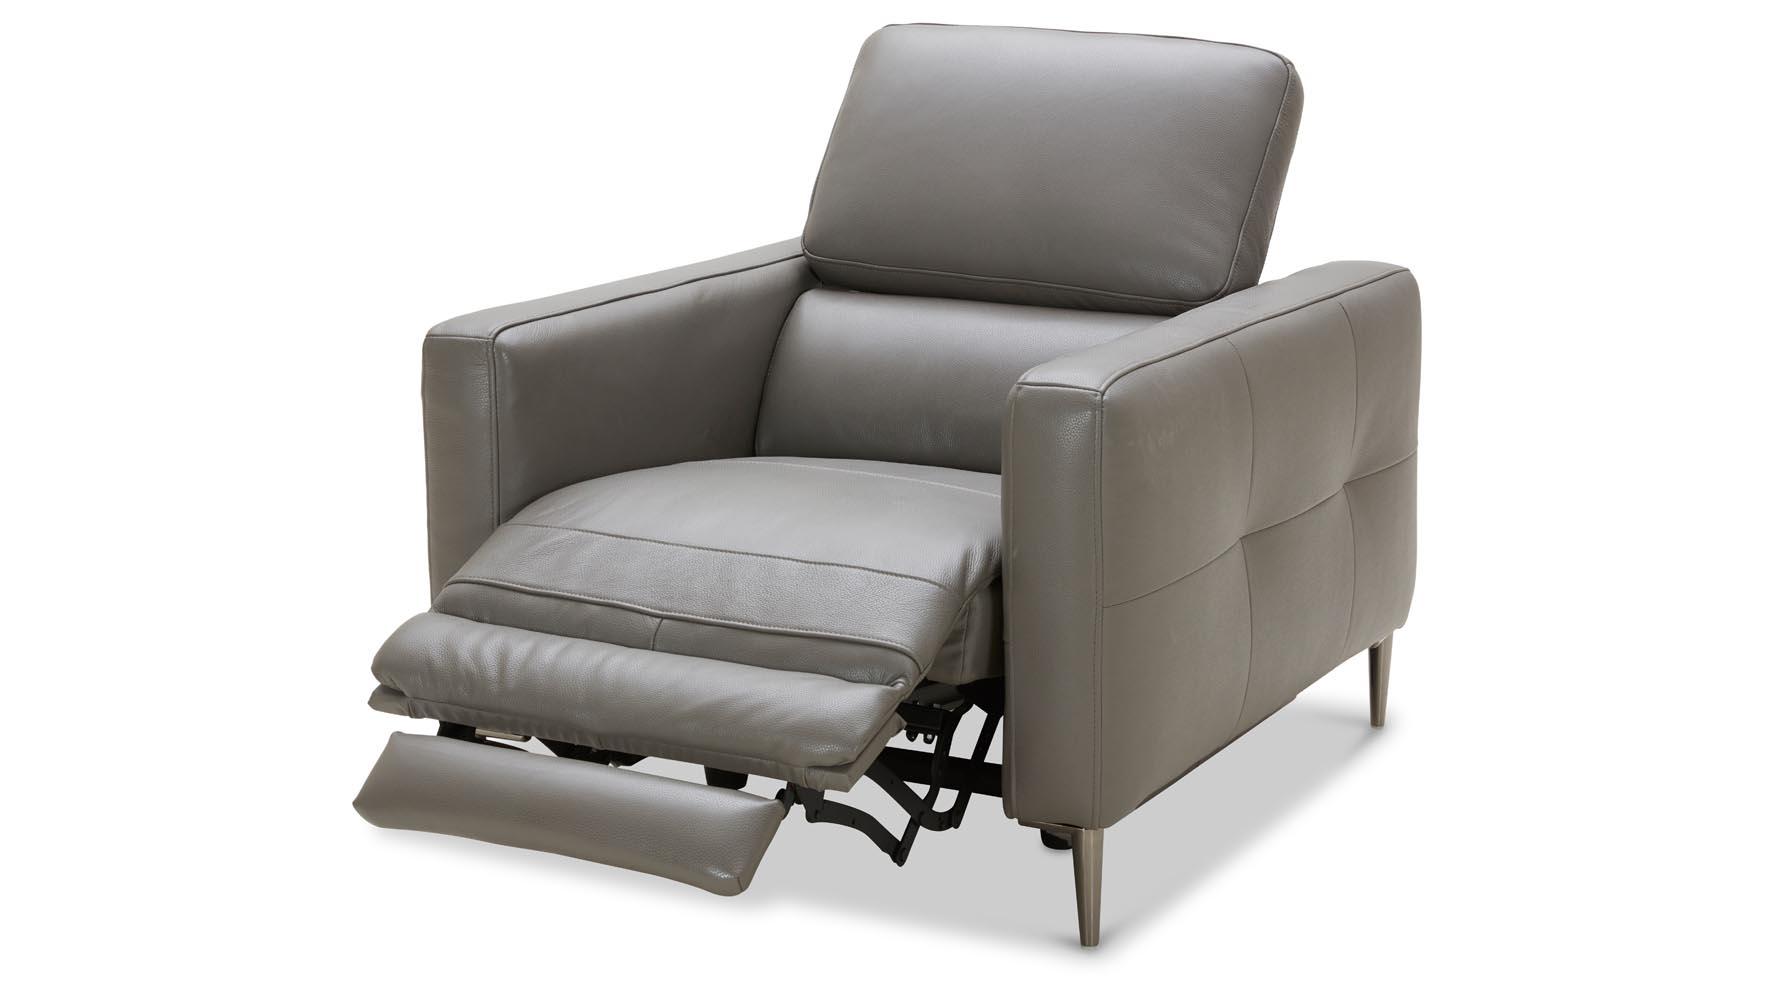 sc 1 st  Zuri Furniture & Products in Recliners | Chaises Seating LIVING on Zuri Furniture islam-shia.org